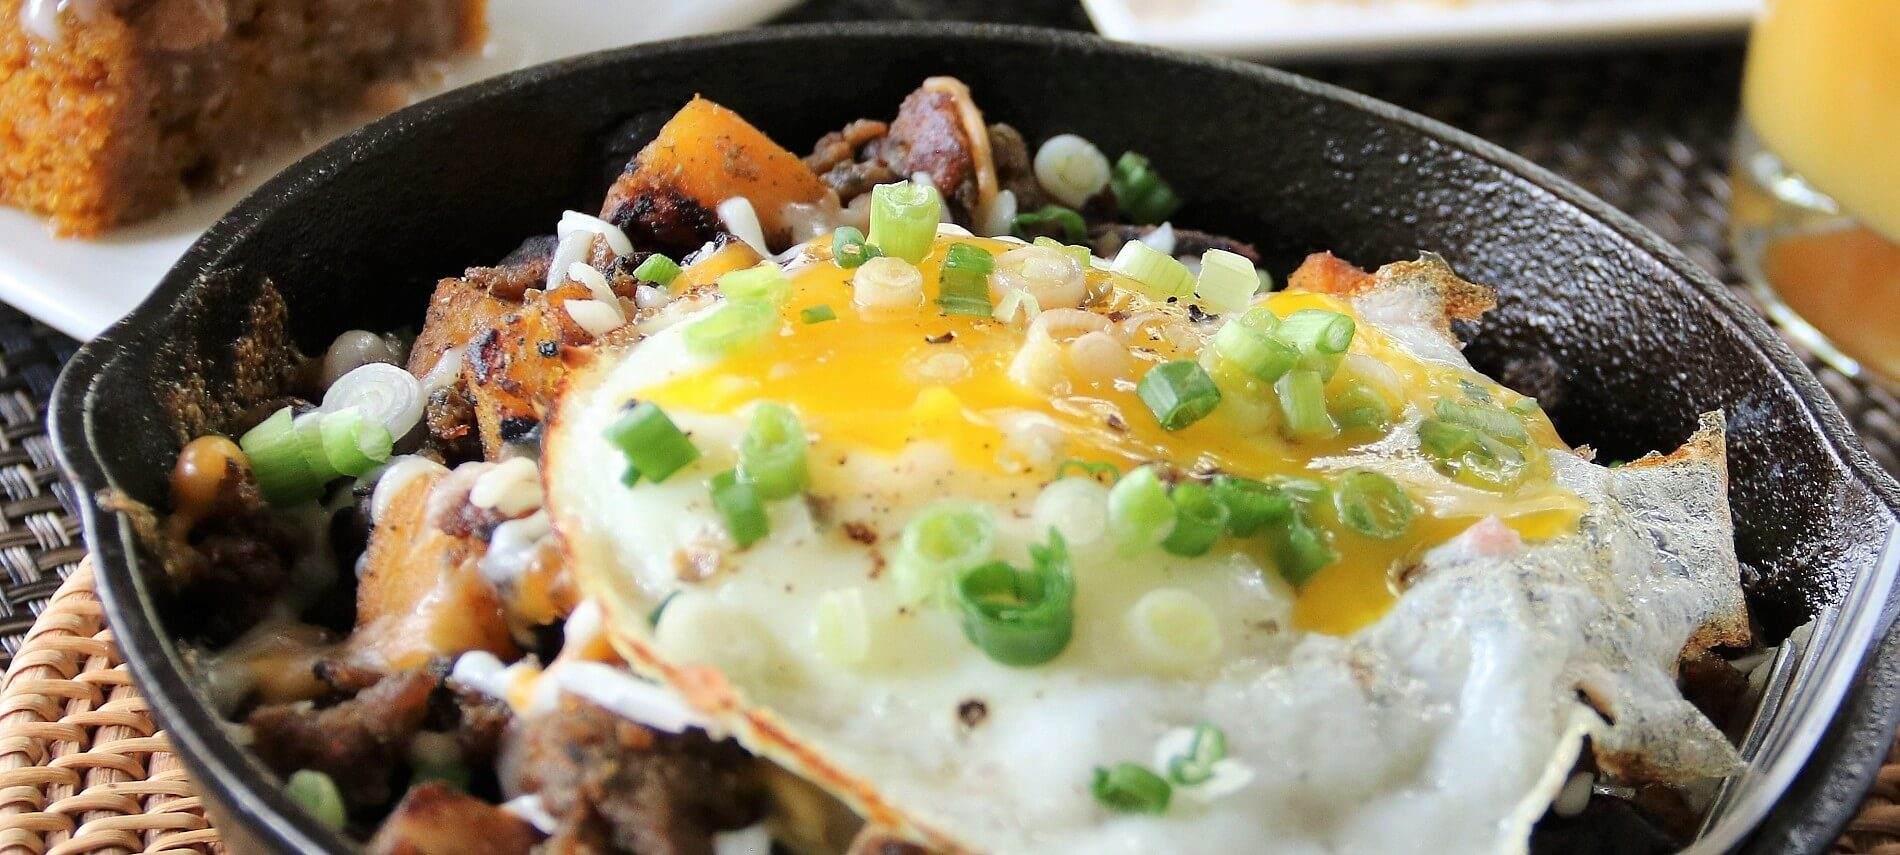 Cast iron pan filled with breakfast hash of meat and potatoes topped with fried eggs and diced green onion